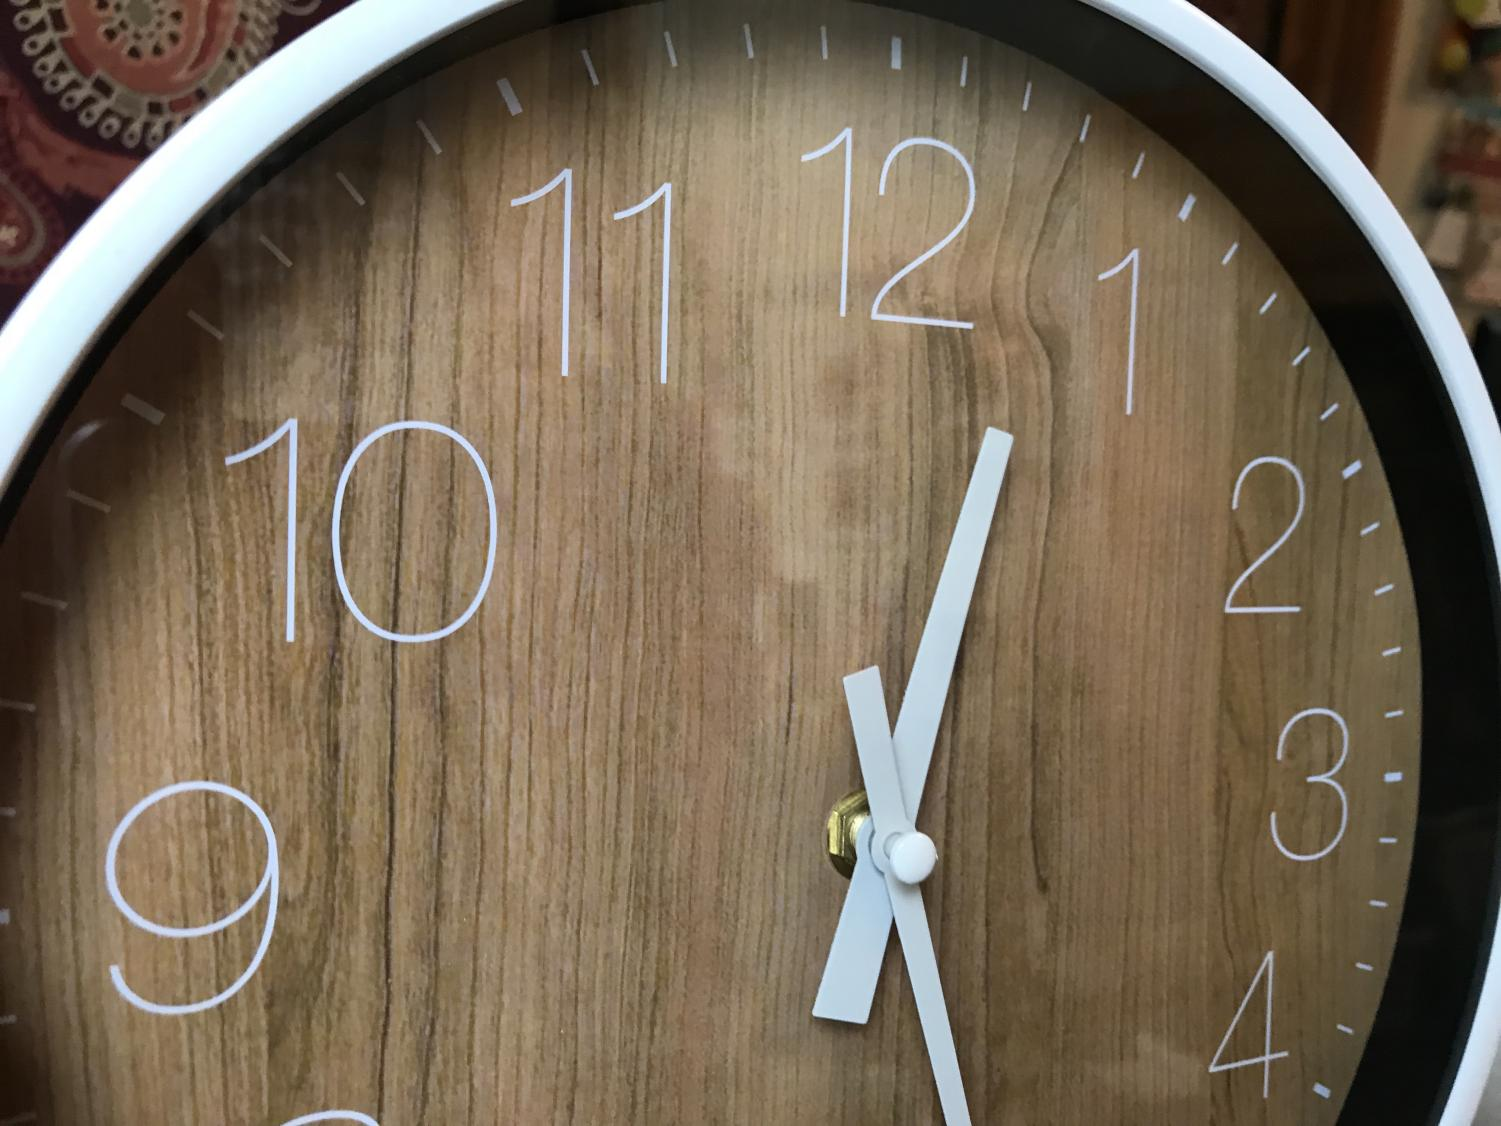 Eau Claire set their clocks forward an hour on Sunday due to Daylight Saving time.